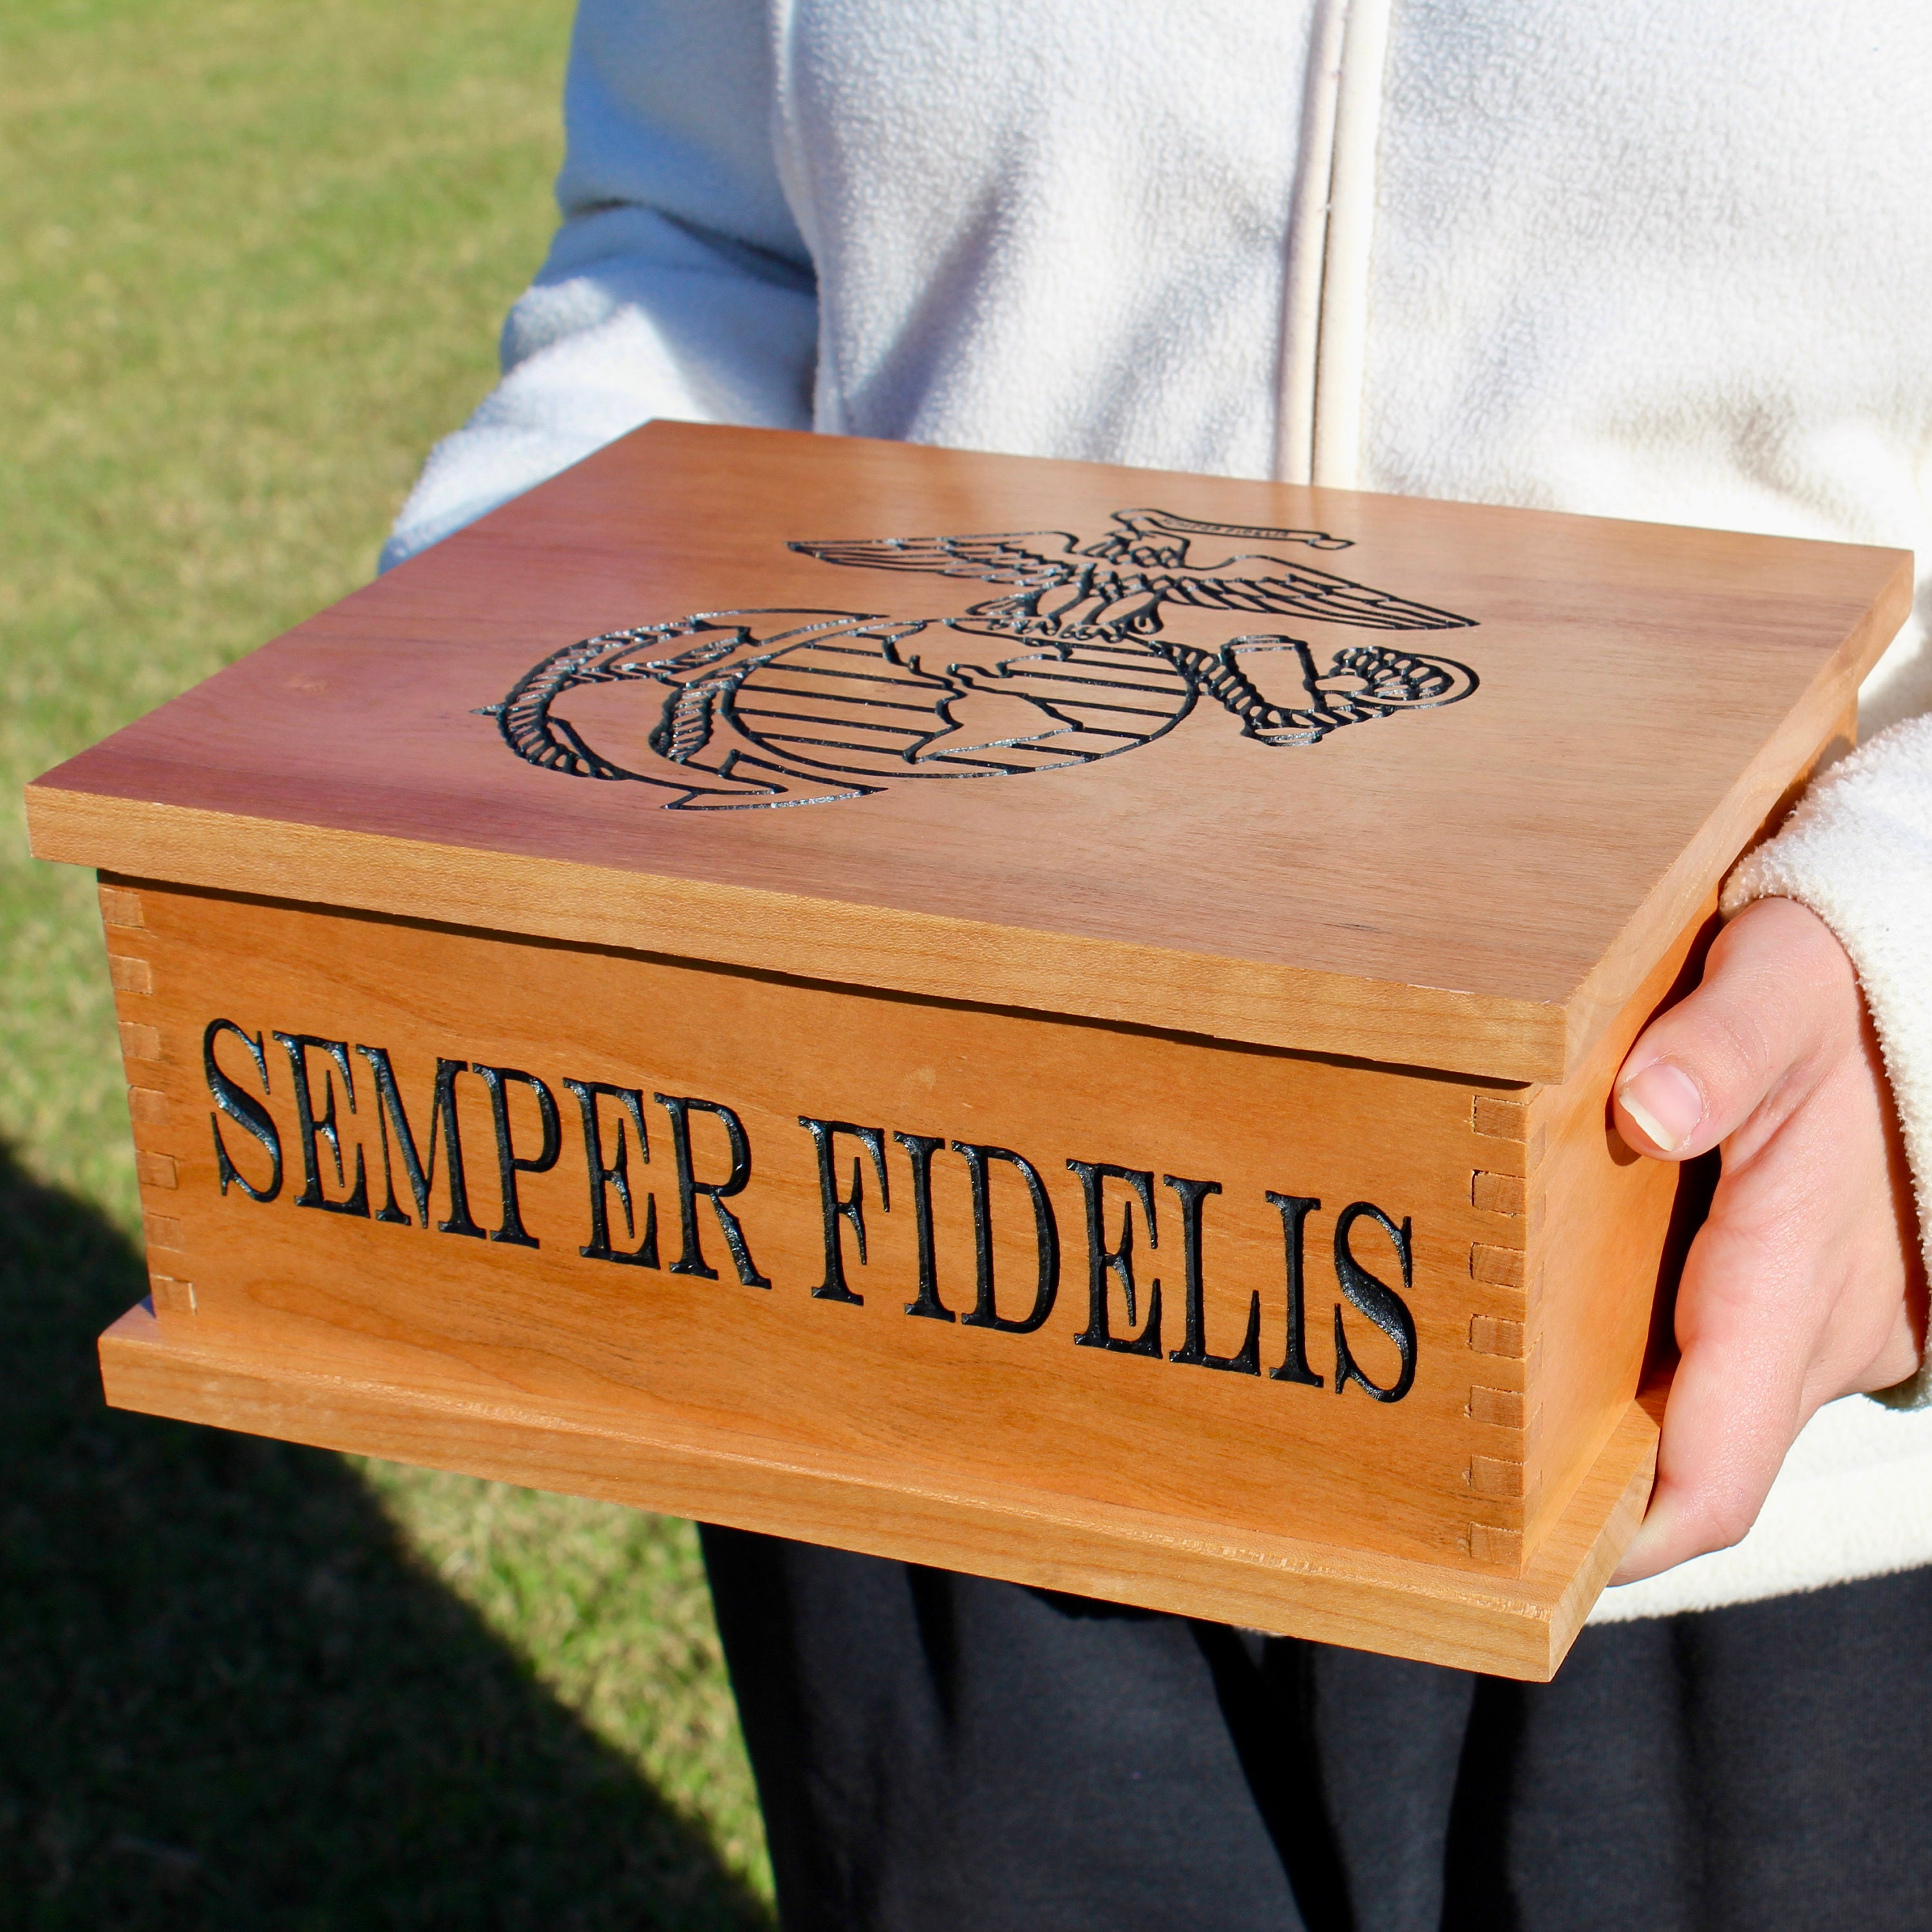 Personalised Wooden Jewellery Box Engraved Name Any Text Gift Keepsake Accessory